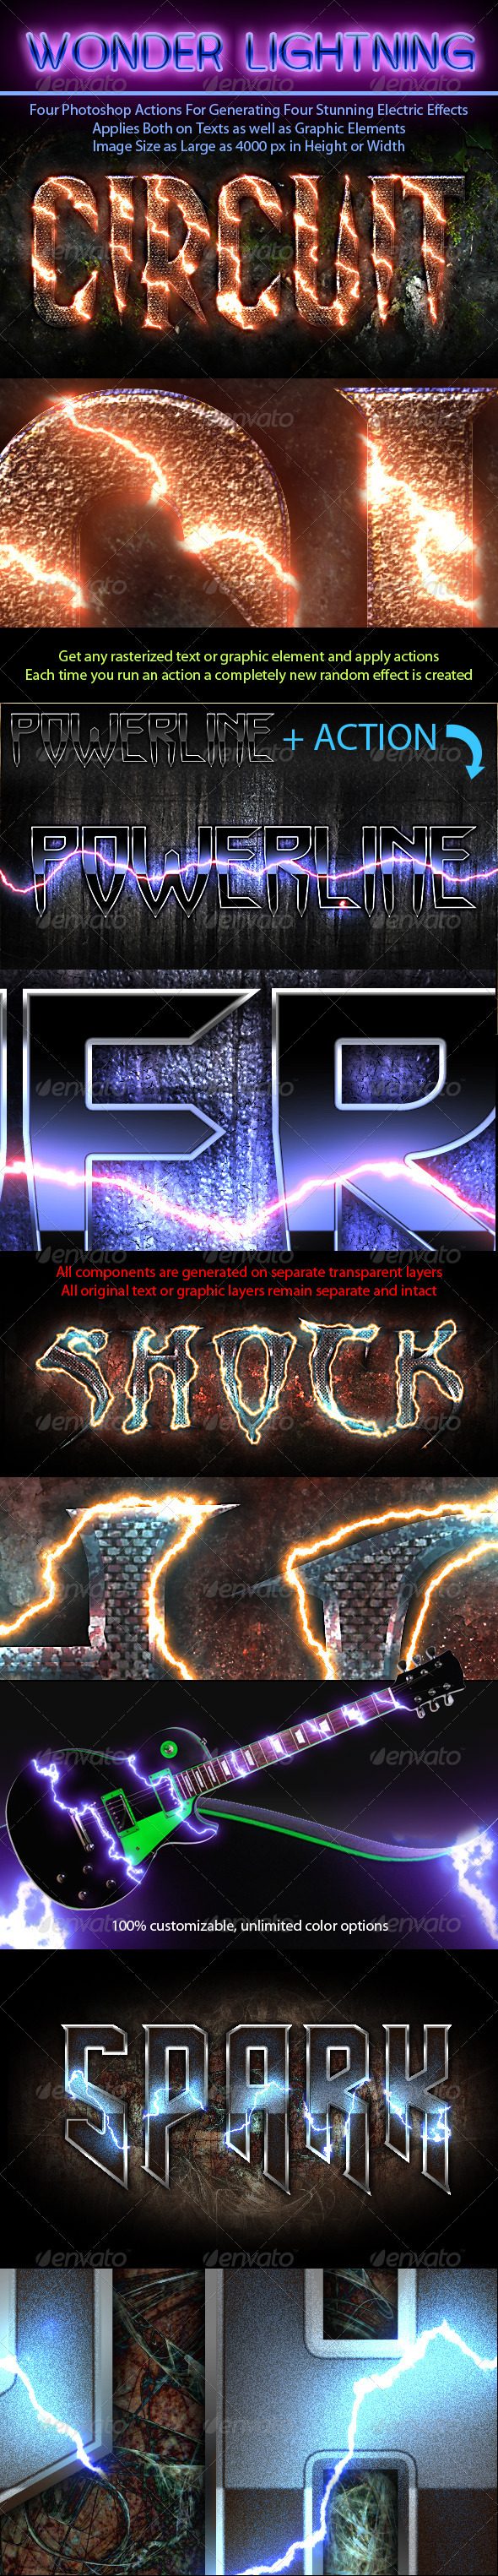 Photoshop Electric Effect Action Pack - Text Effects Actions